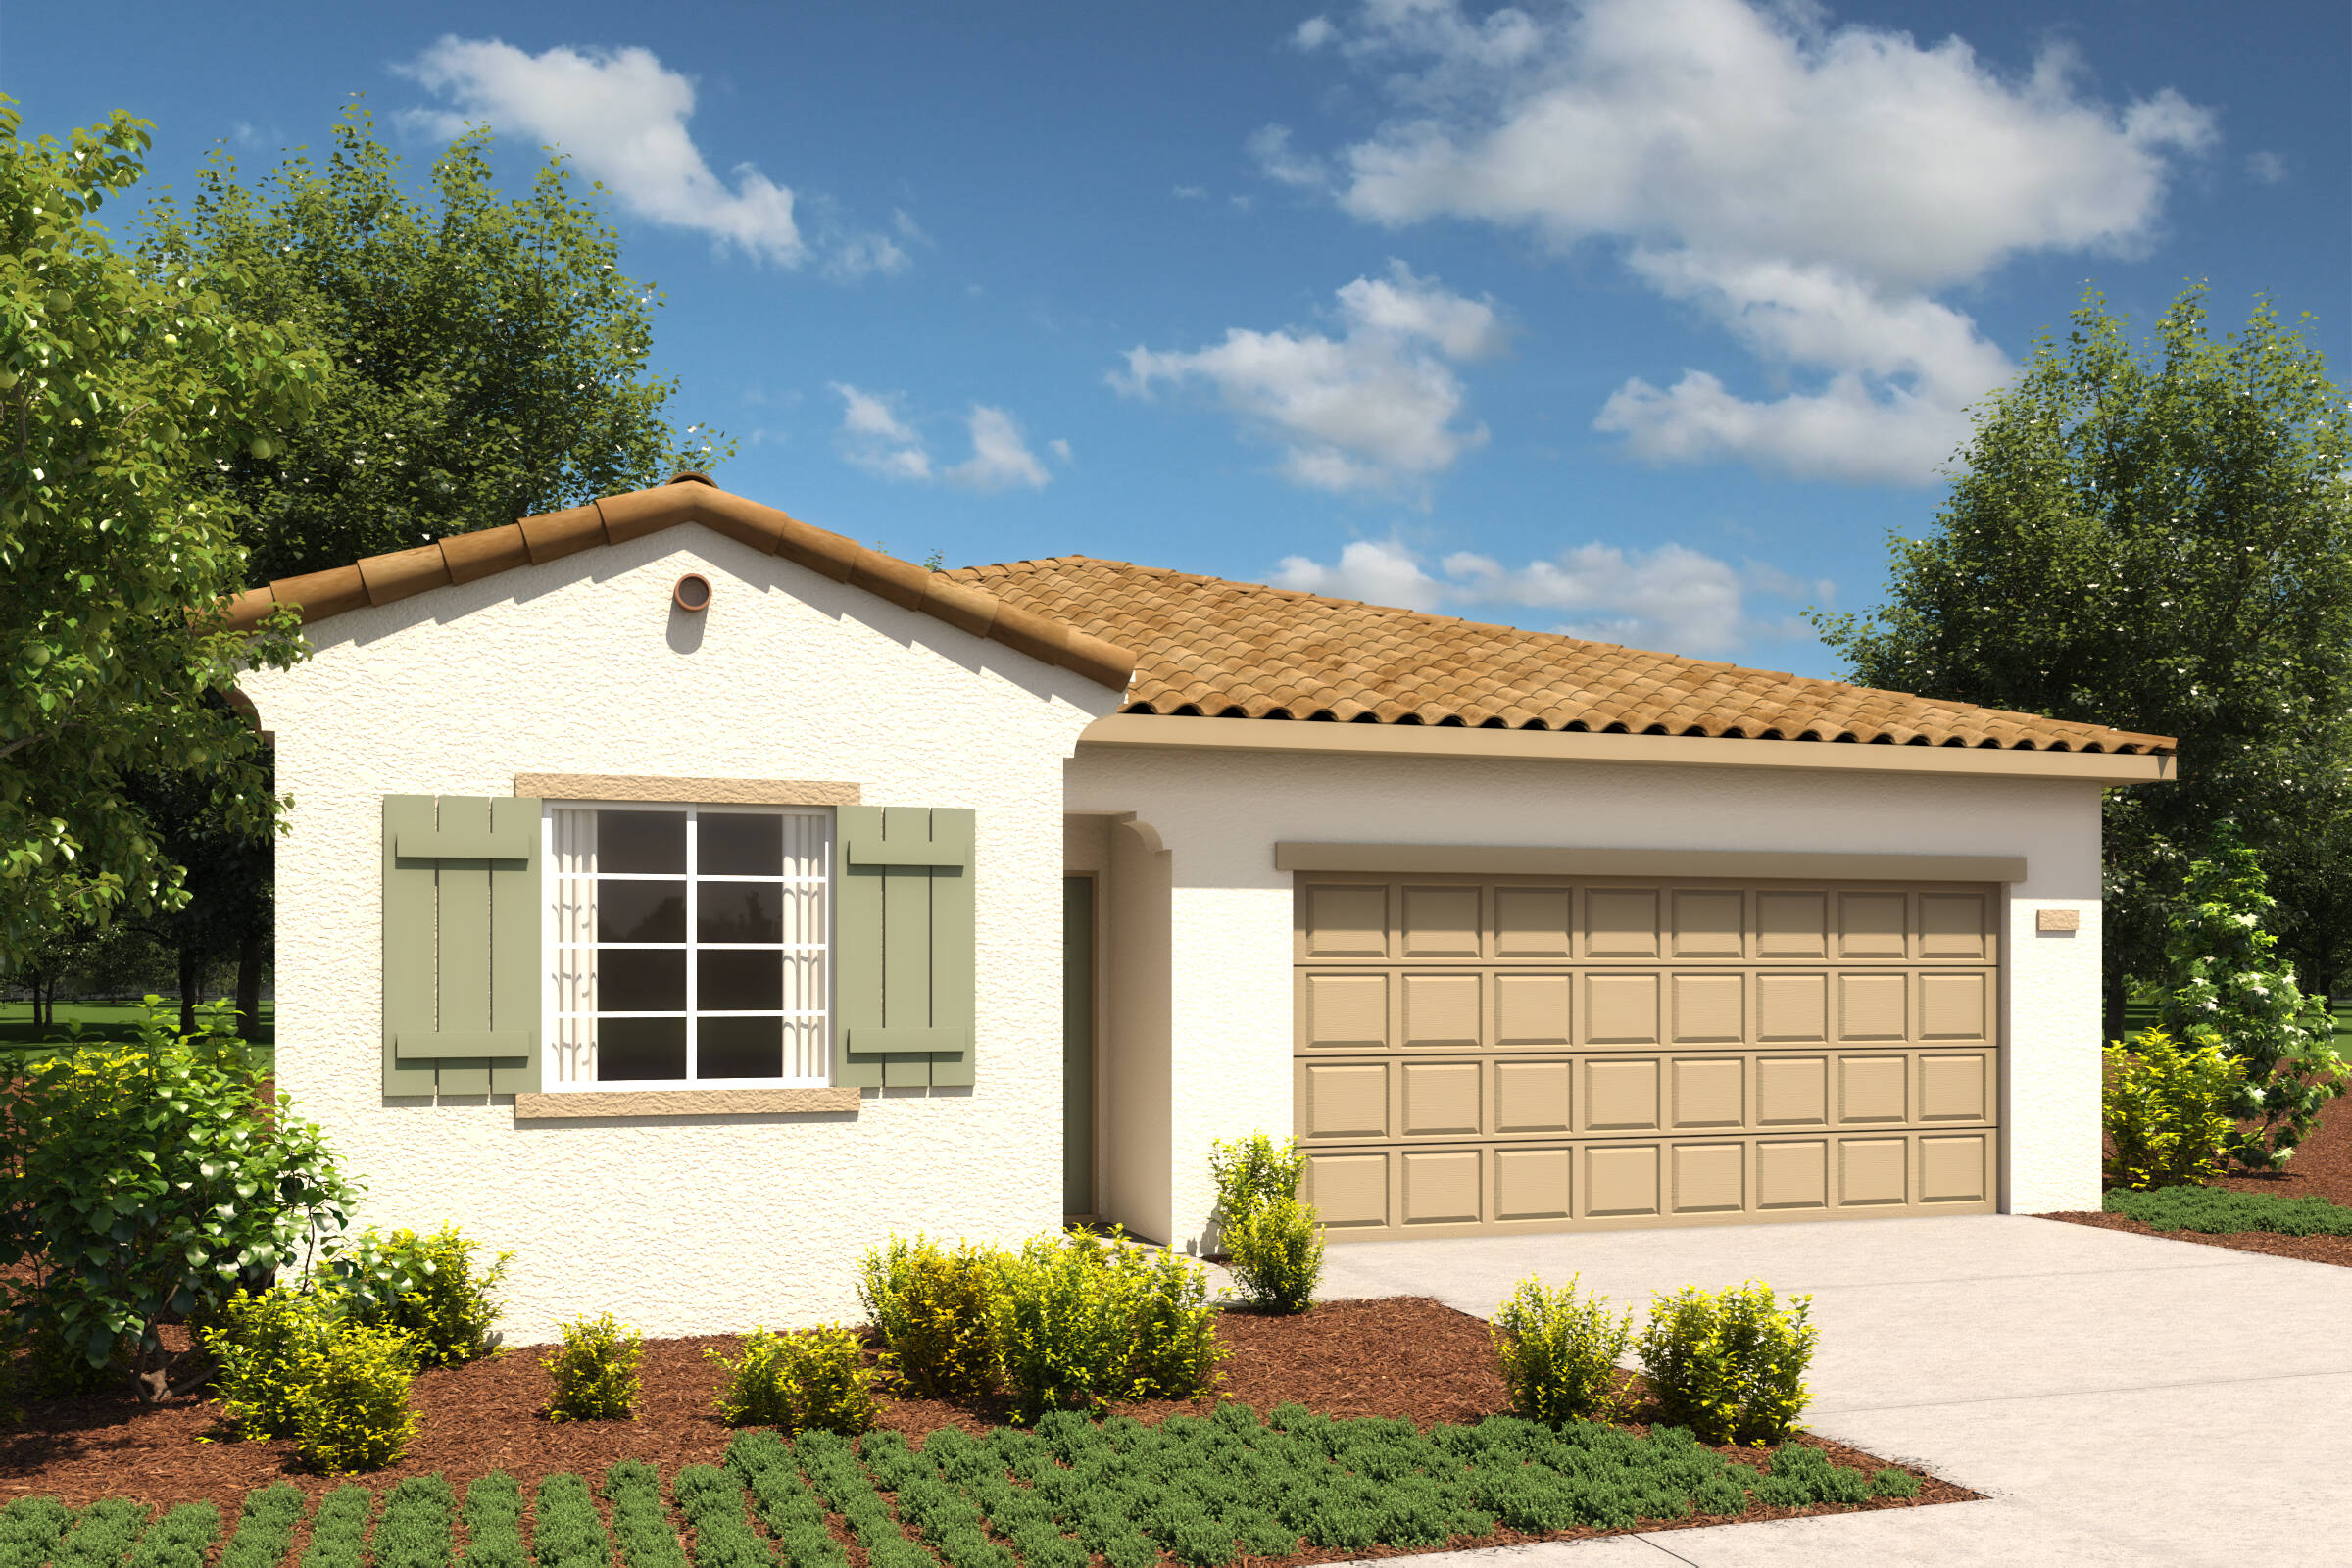 sierra 3575 a spanish new homes aspire at sun valley